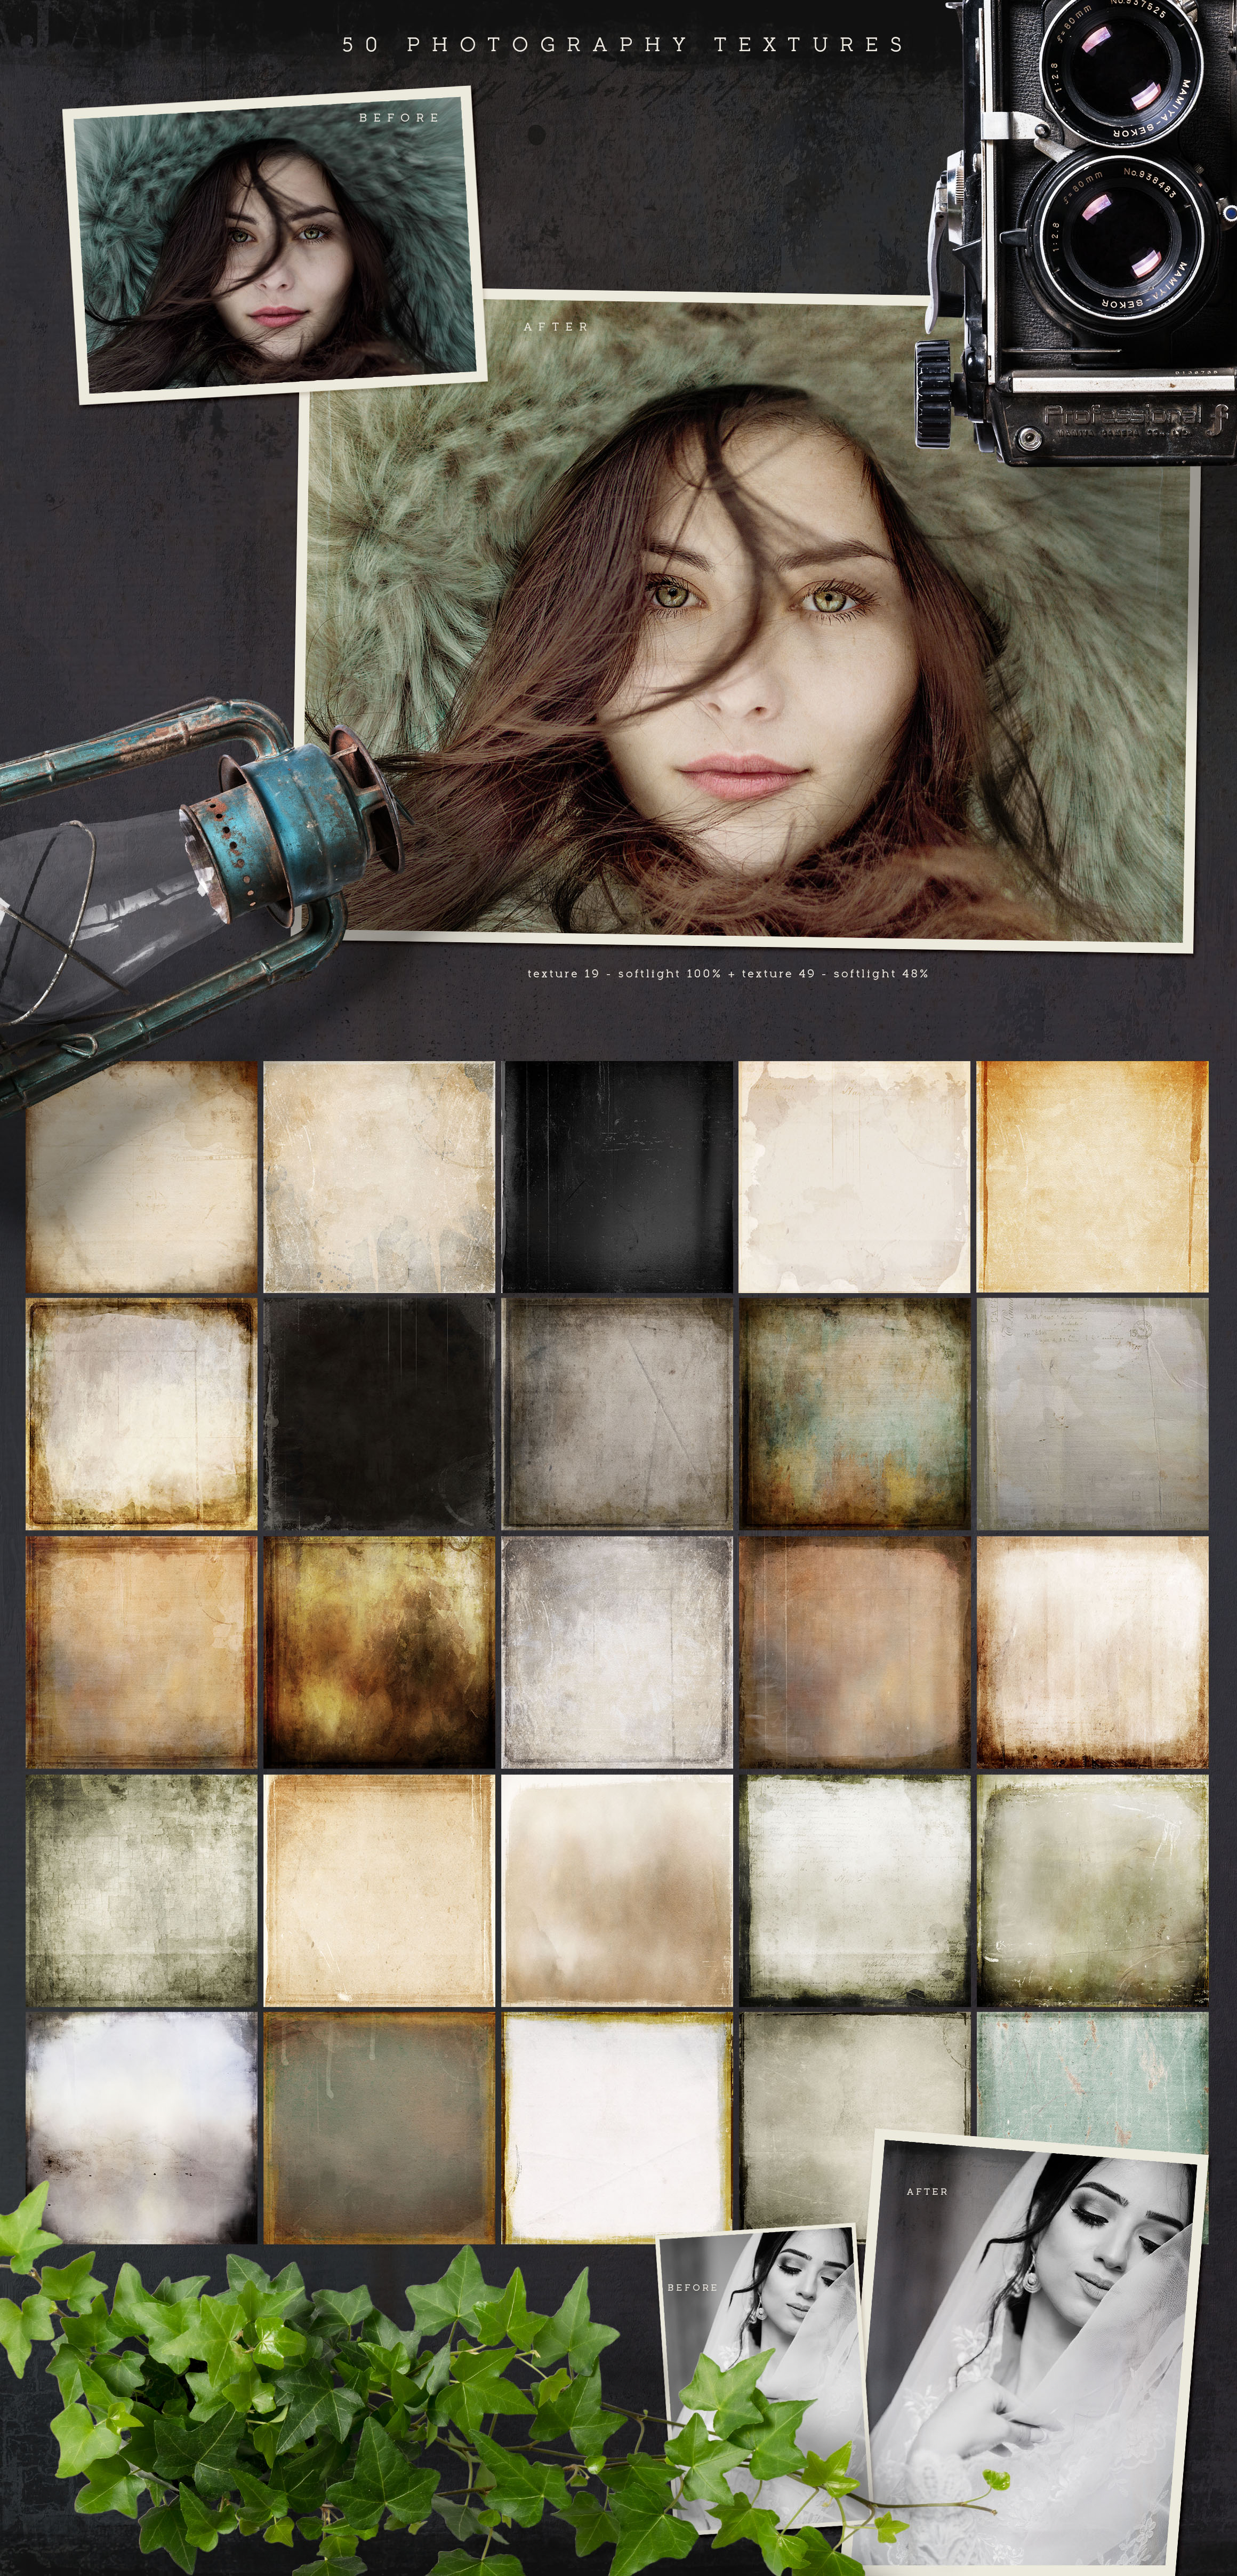 Photography Texture - Artistic vol.1 example image 2